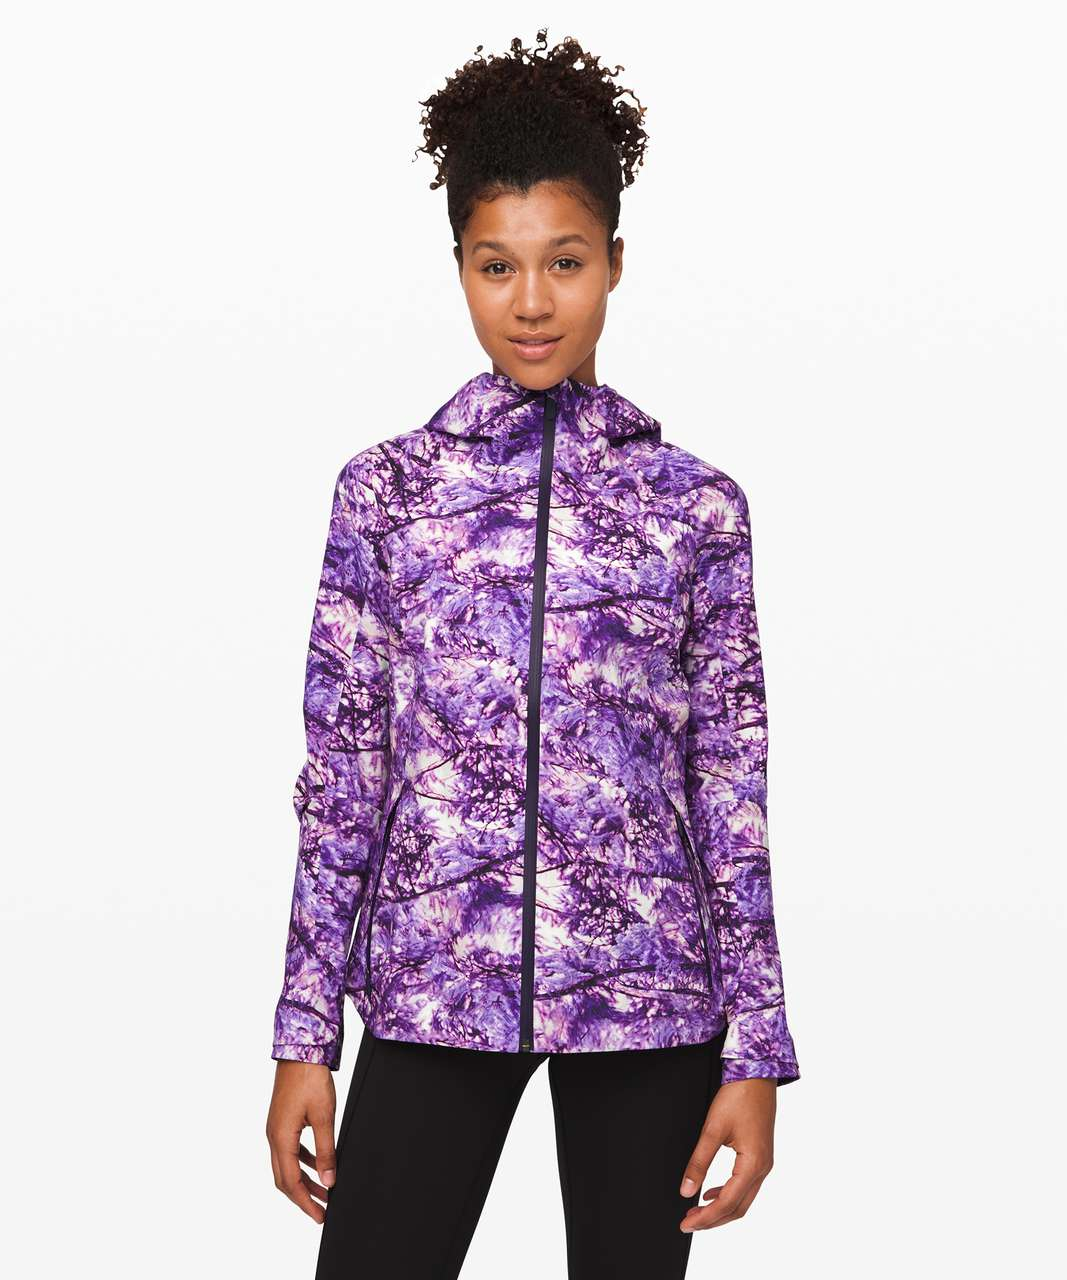 Lululemon The Rain Is Calling Jacket - Fractal Forest Pink Multi